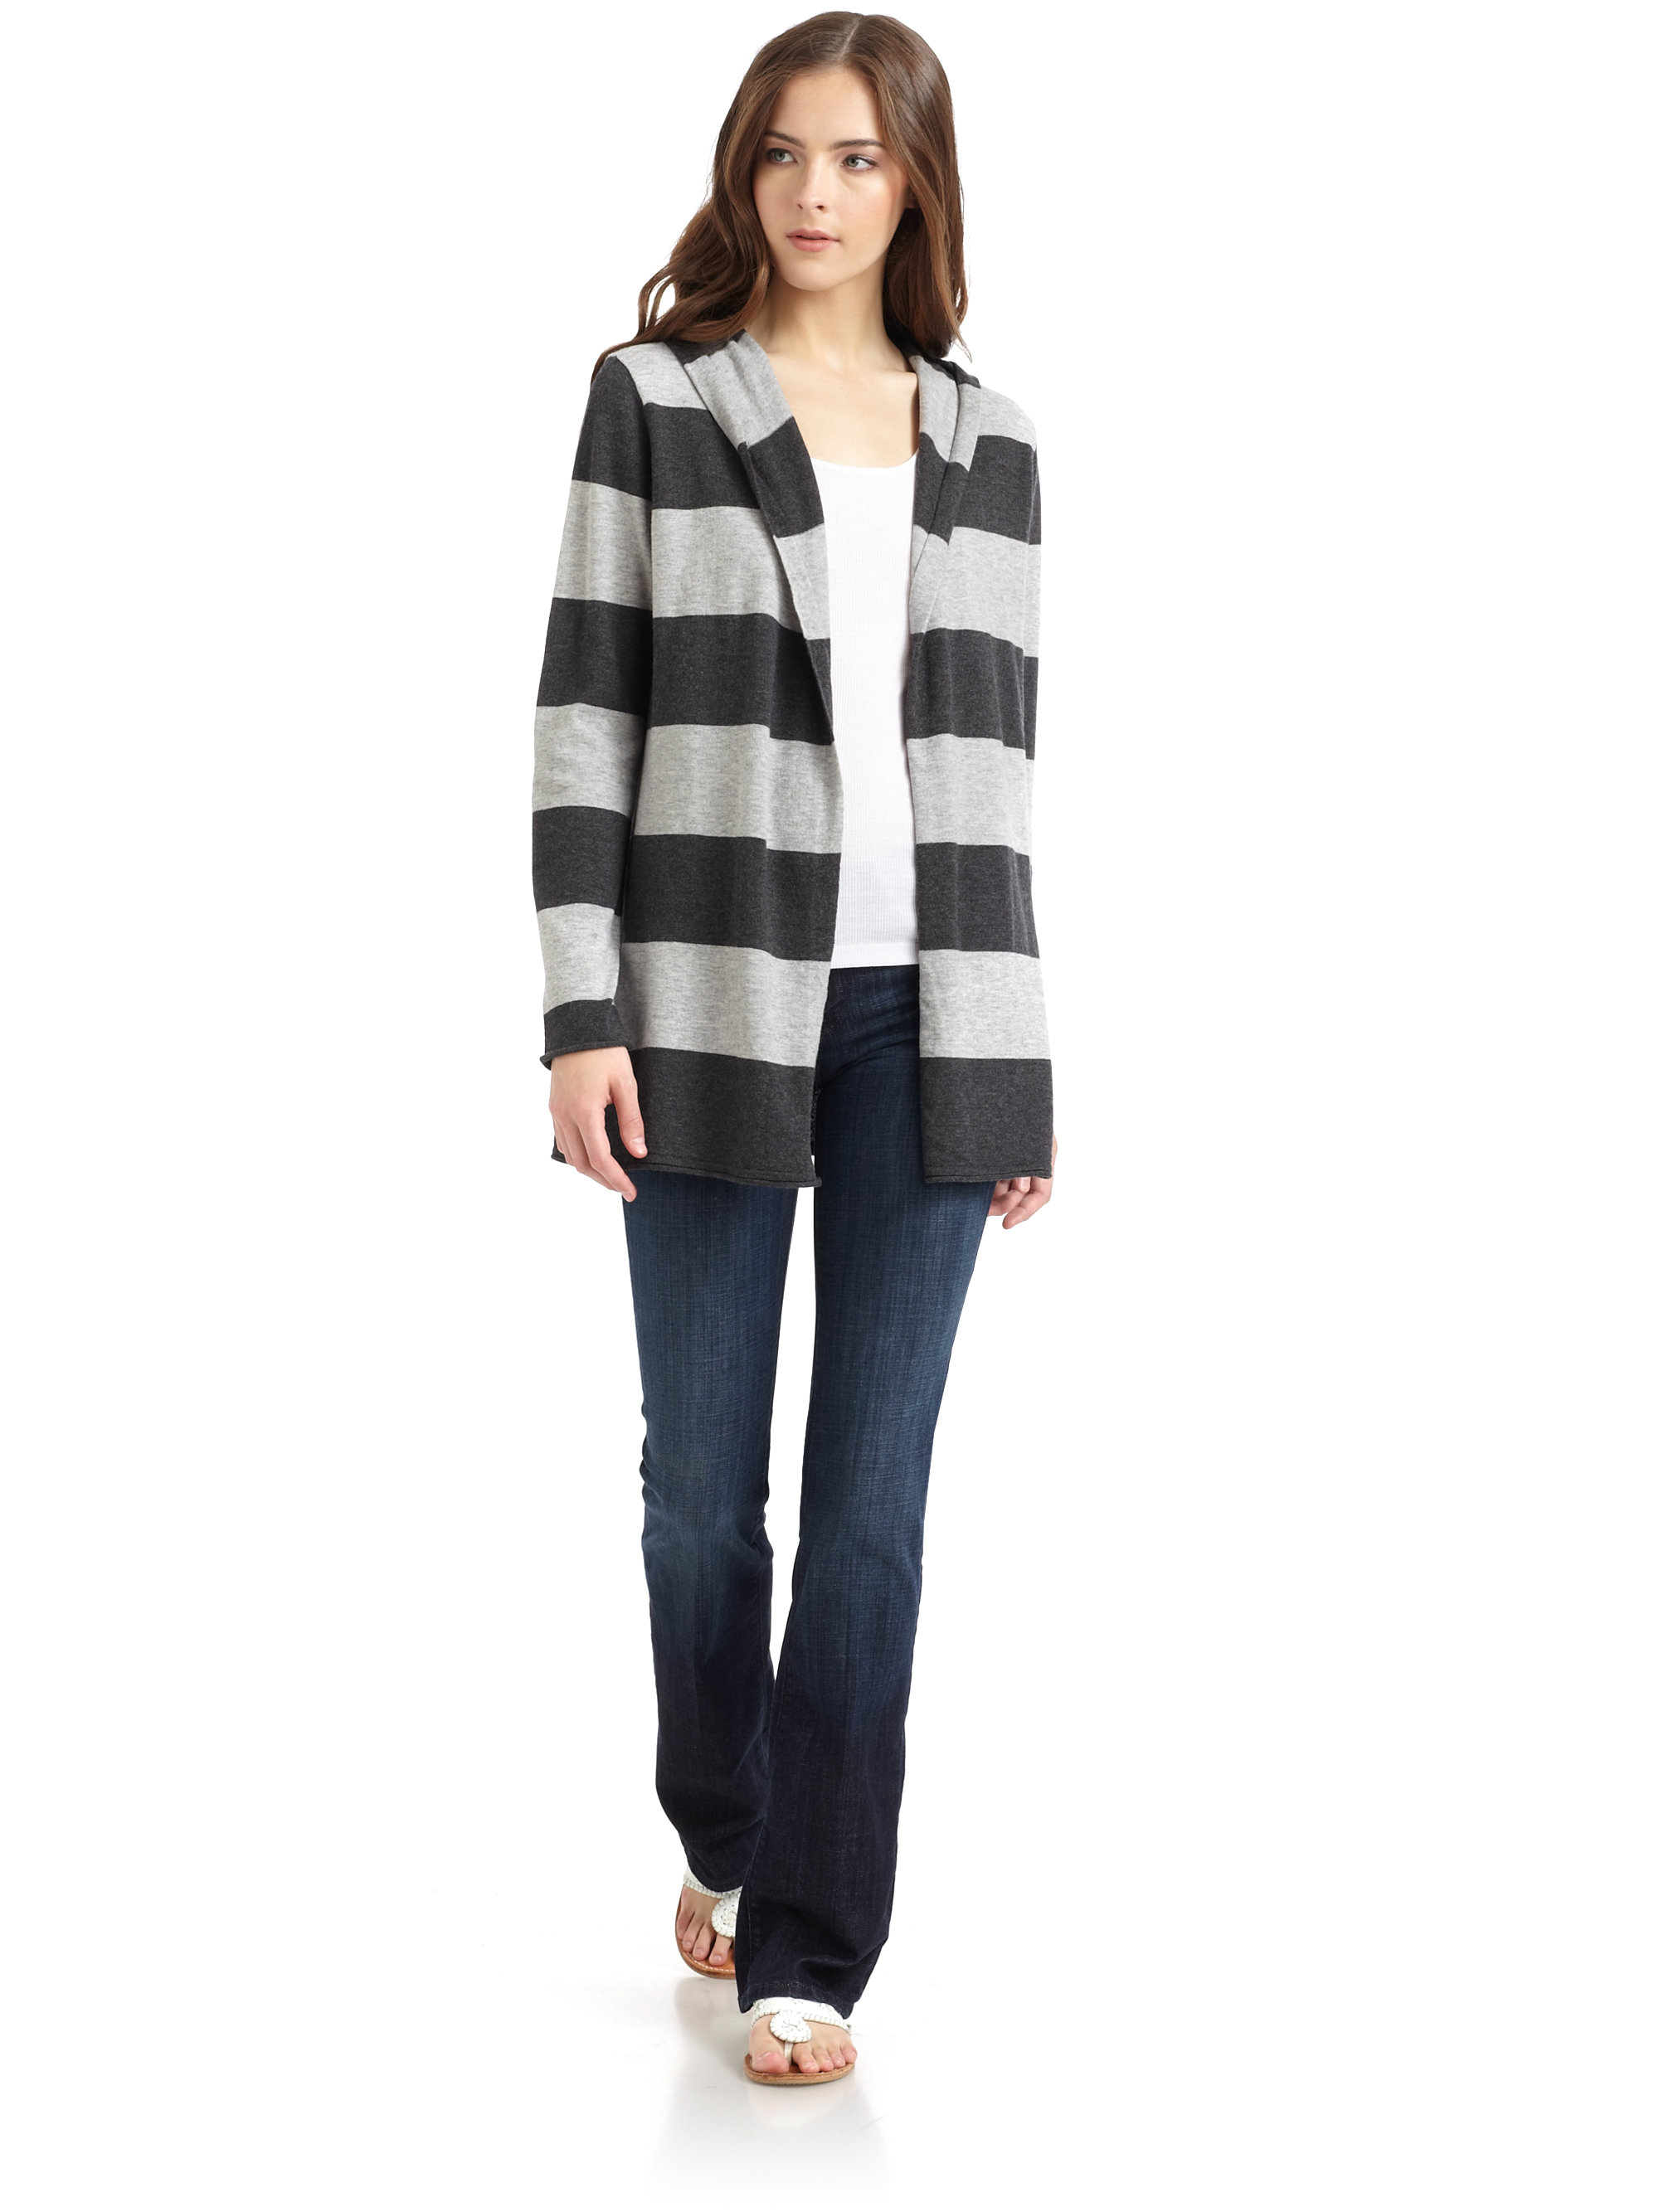 Blue saks fifth avenue Striped Hooded Cardigan in Gray | Lyst